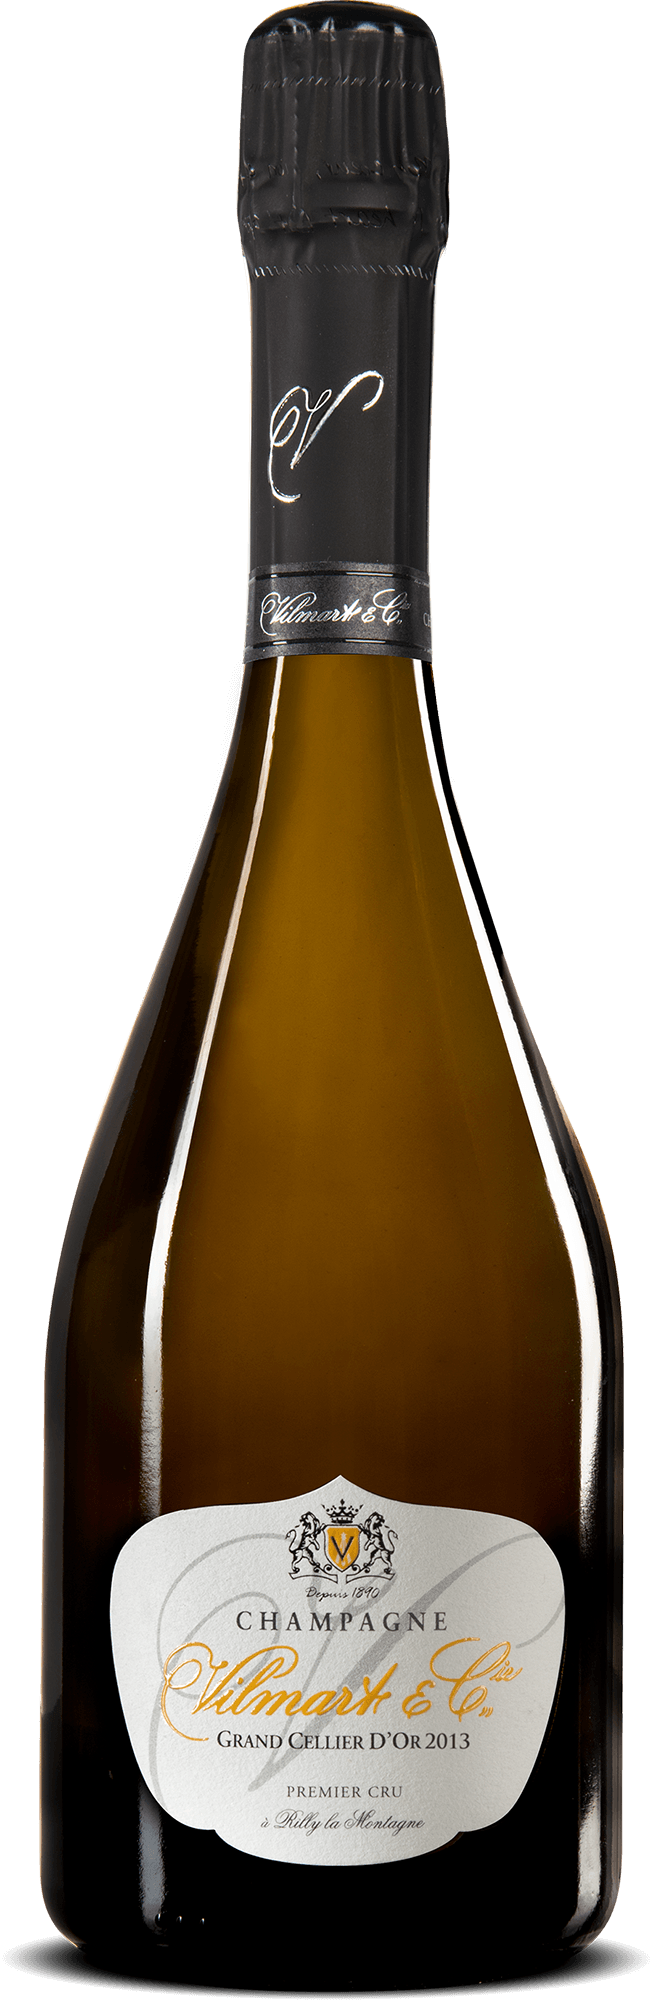 Vilmart & Co. Grand Cellier d'Or 2014